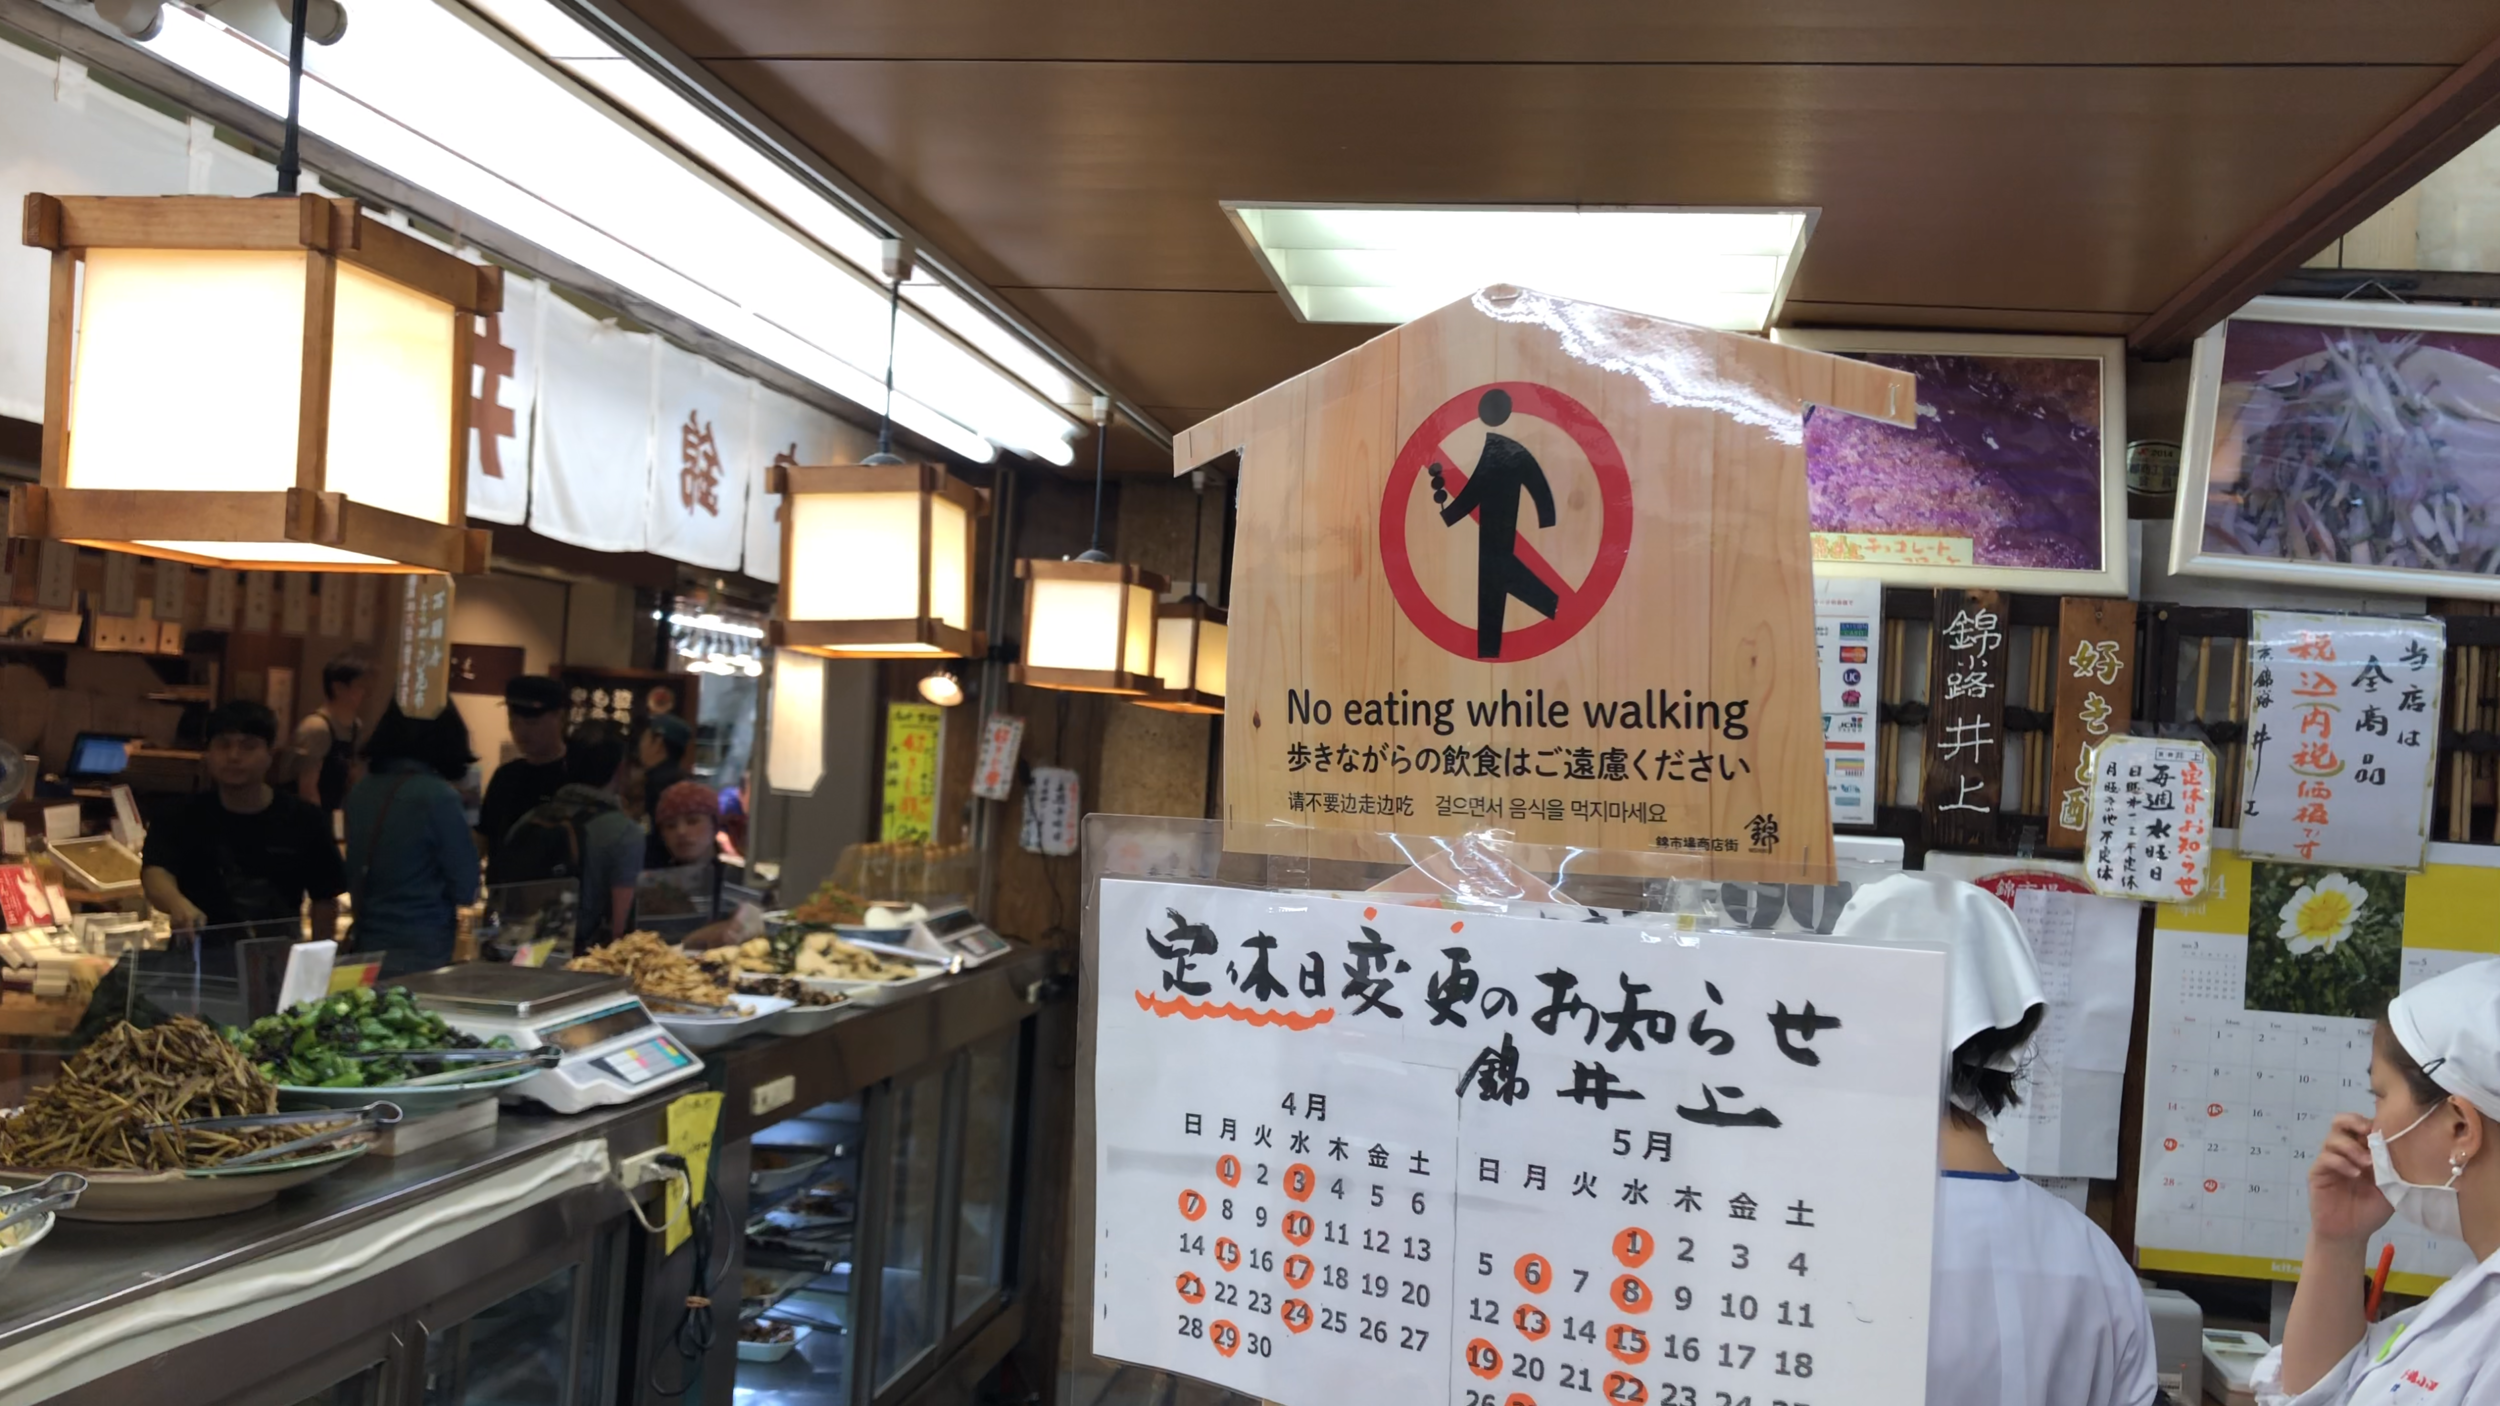 Nishiki Market in Kyoto. A sign to remind people to observe no eating while walking rule.